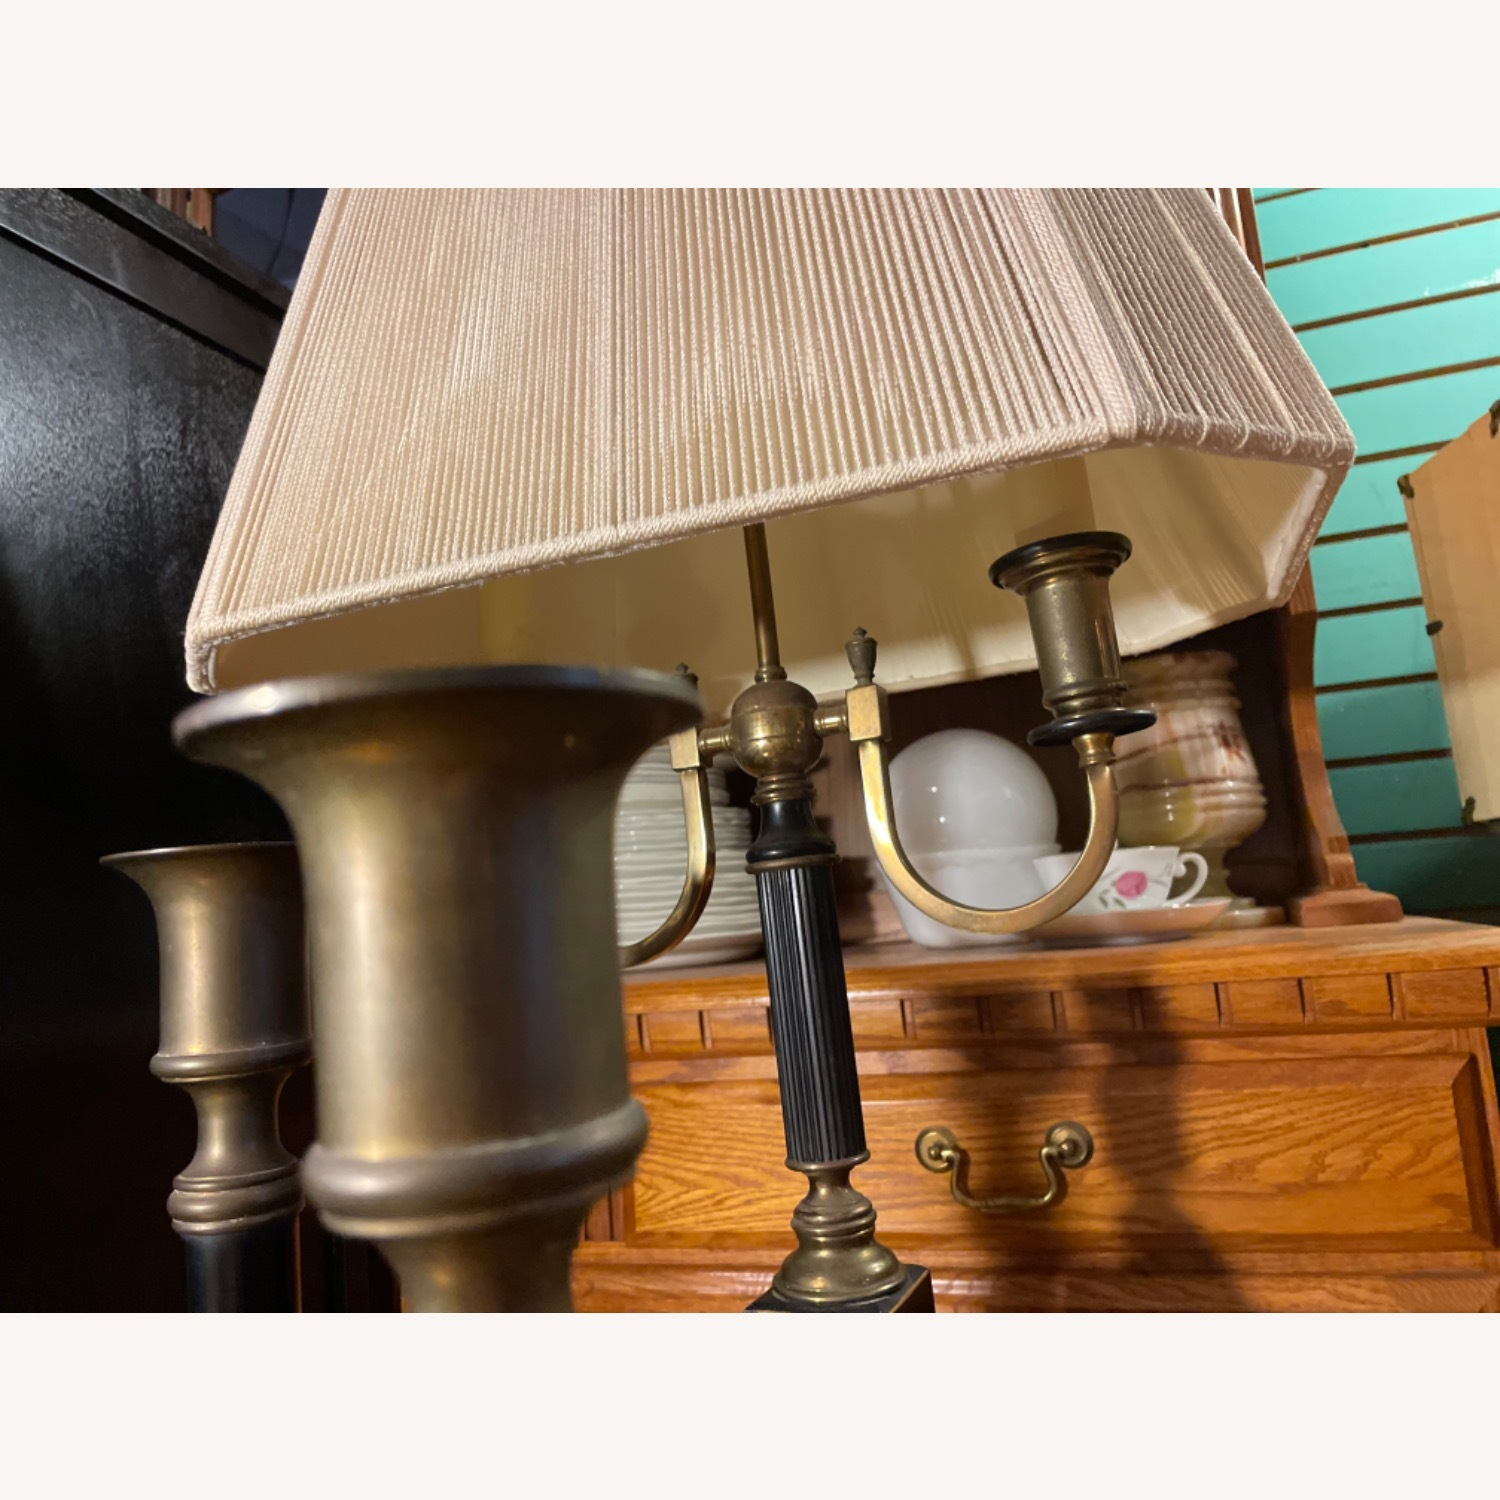 Antique 1930s Set of Brass Candle Sticks & Lamp - image-8